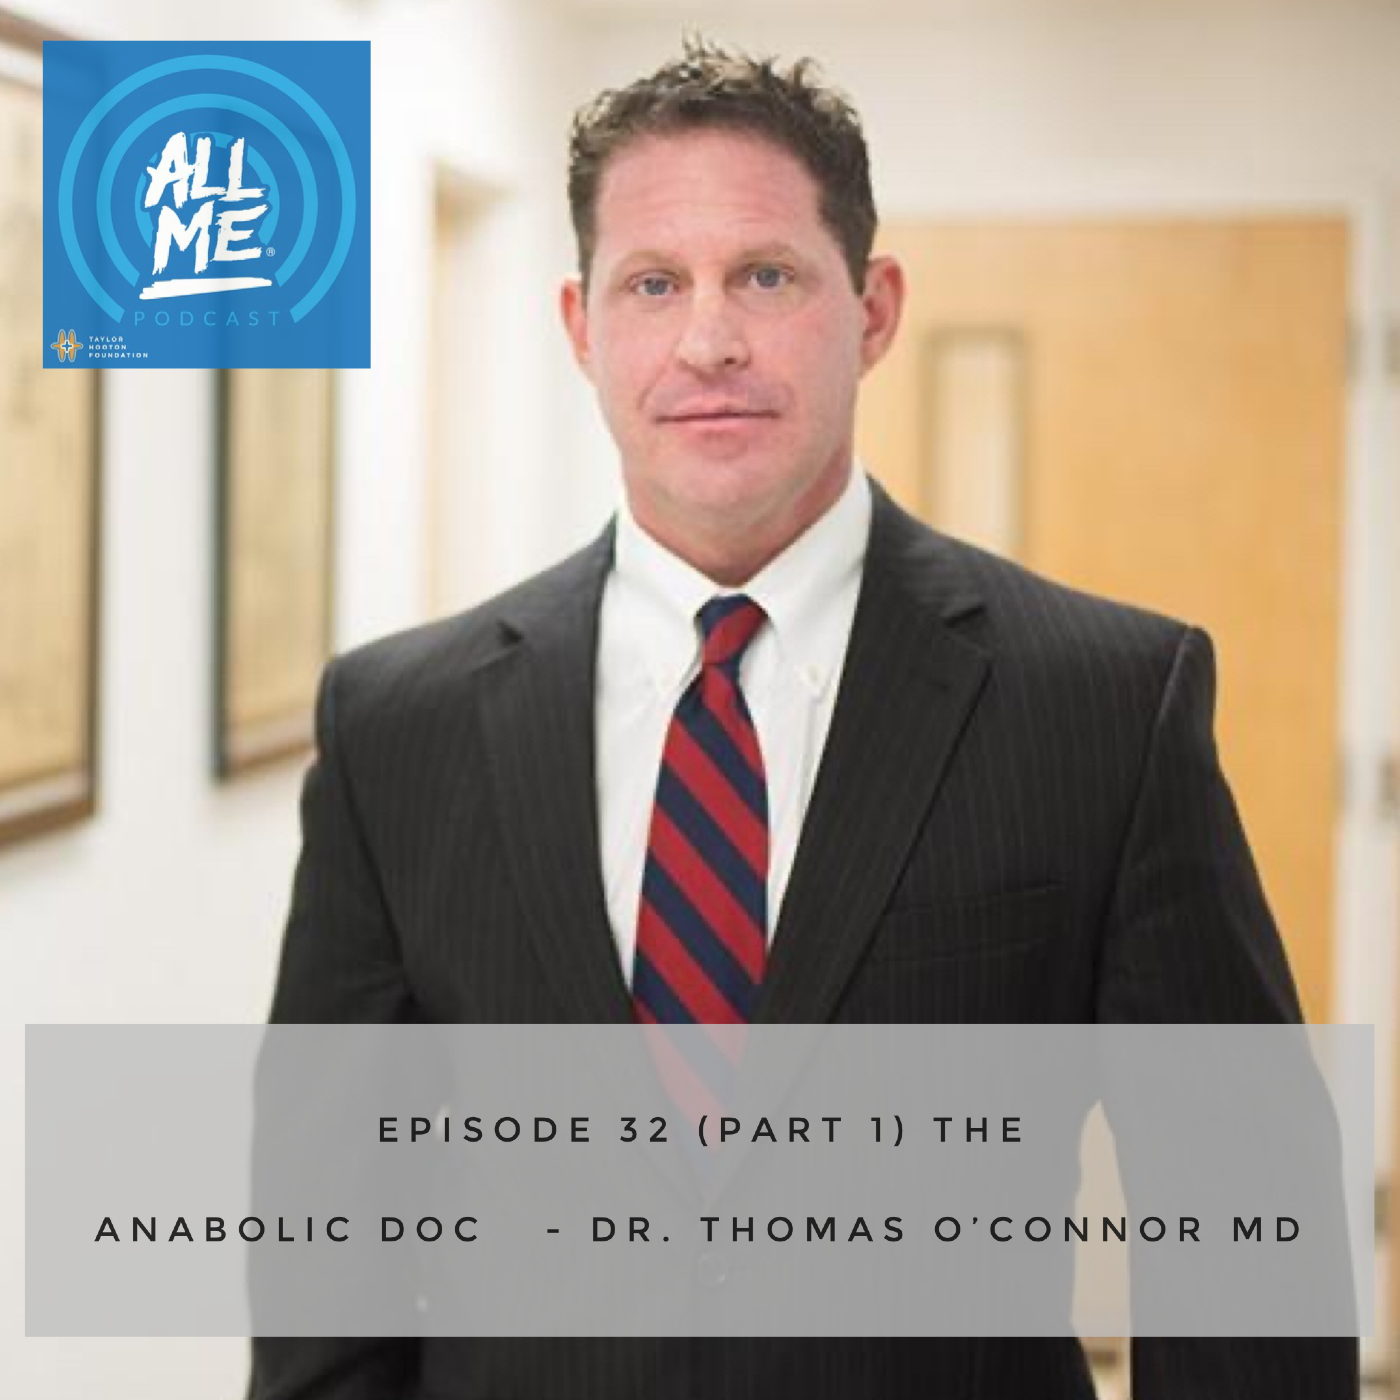 Episode 32: The Anabolic Doc - Dr. Thomas O'Connor (Part 1)